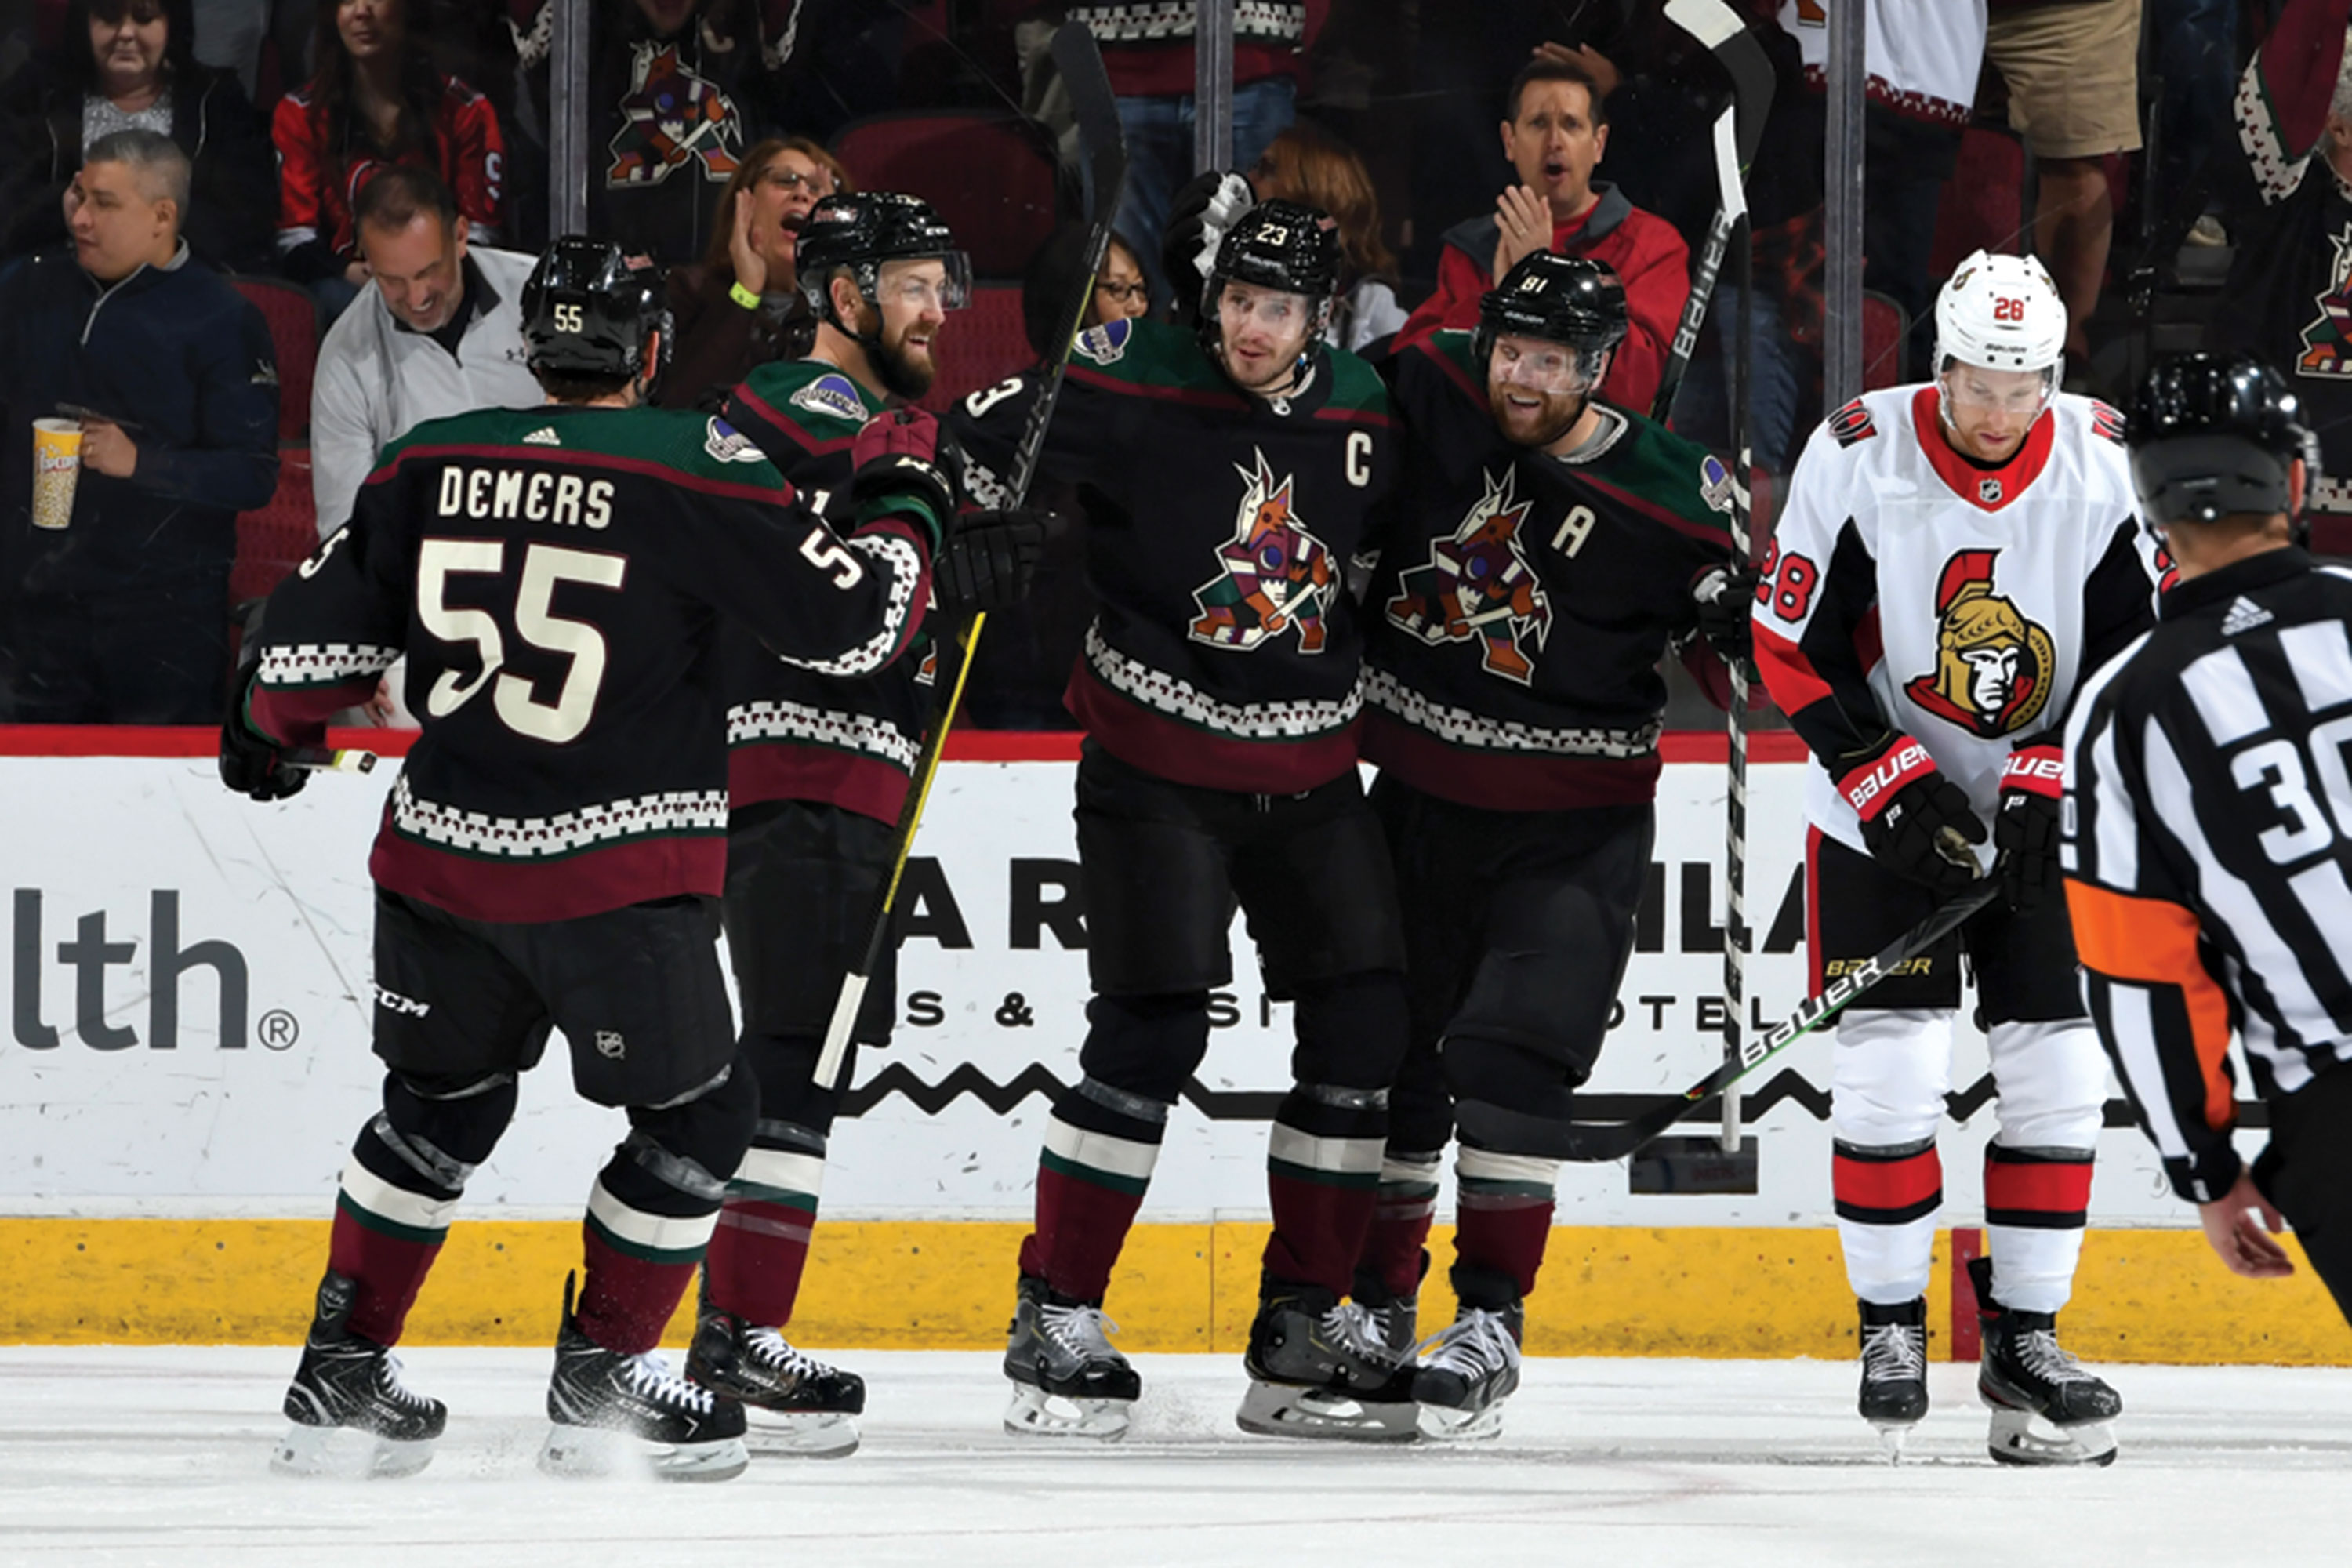 Photos courtesy Arizona Coyotes